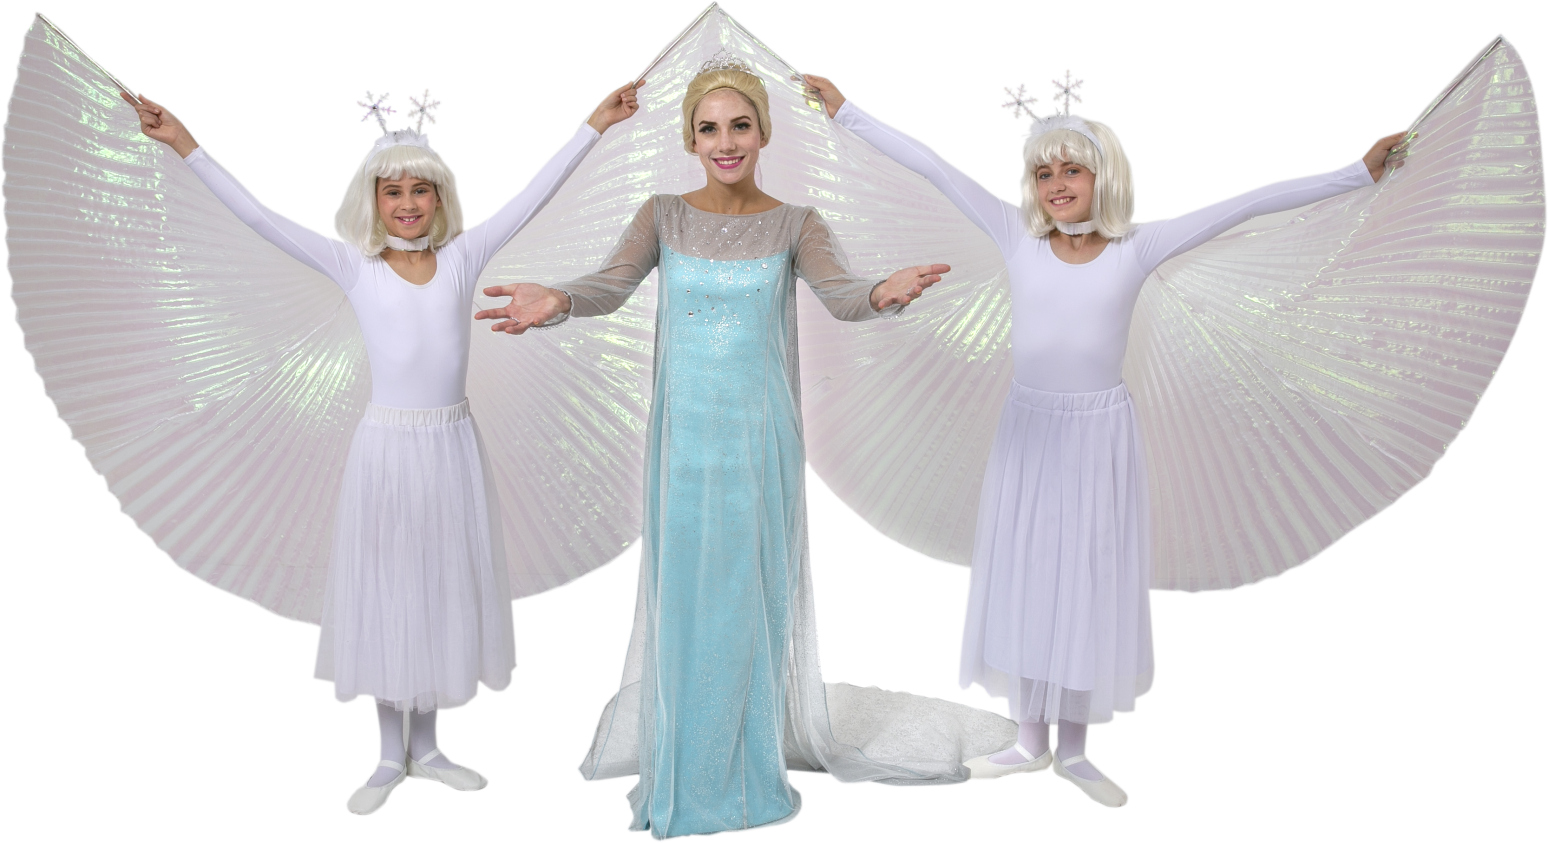 Frozen Elsa Ice Dress and Snow Chorus Rental Costumes